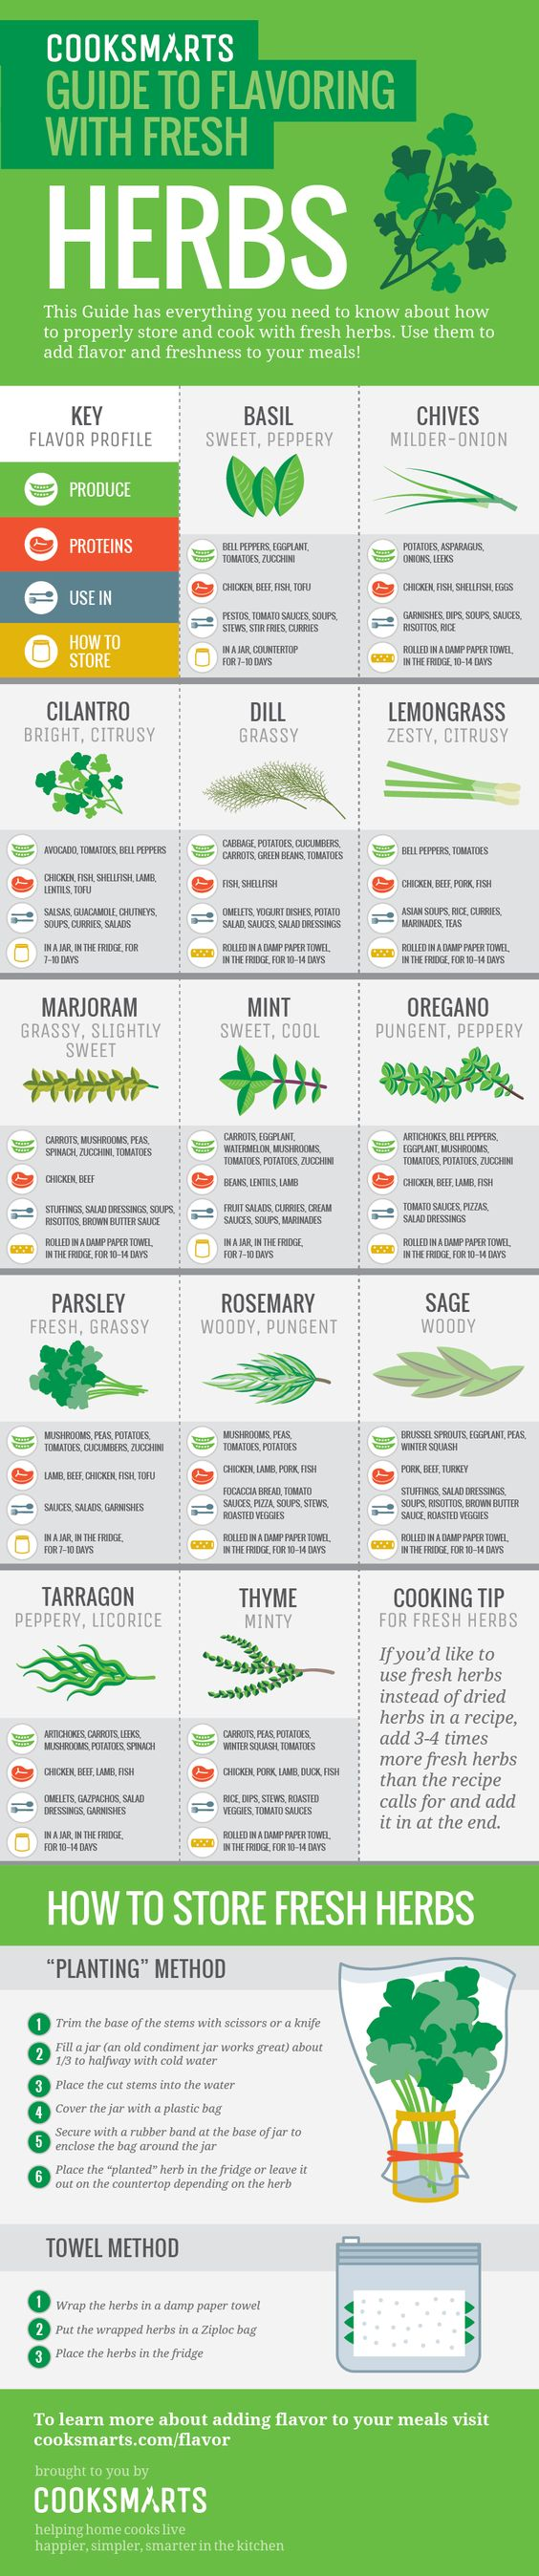 How to properly store and cook with fresh herbs via @CookSmarts #flavor #herbs: